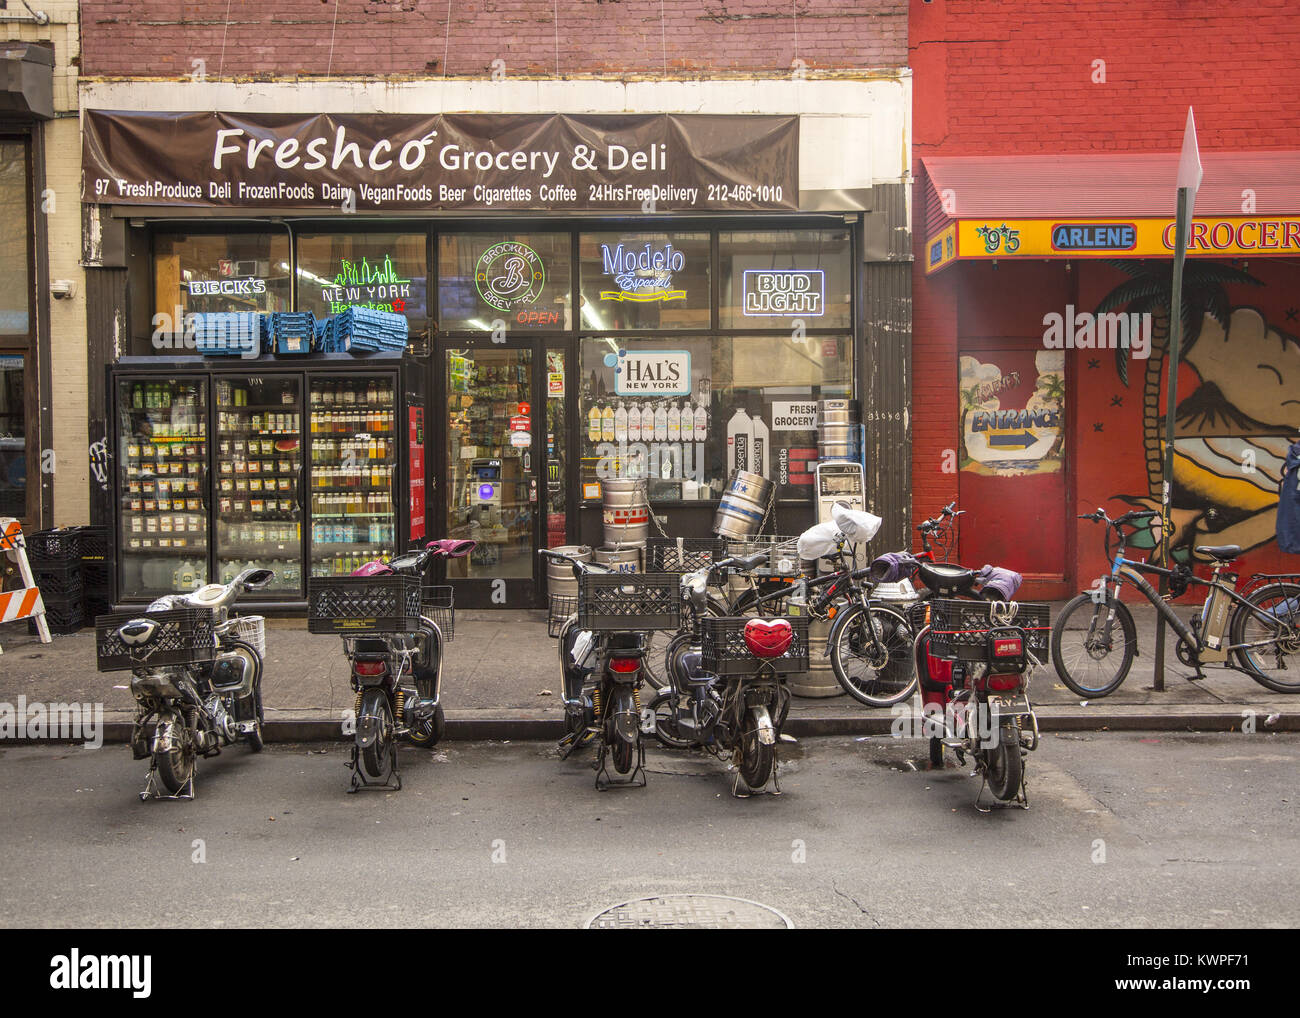 Motorized delivery bikes have taken over New York City, causing problems because they don't seem to be well - Stock Image